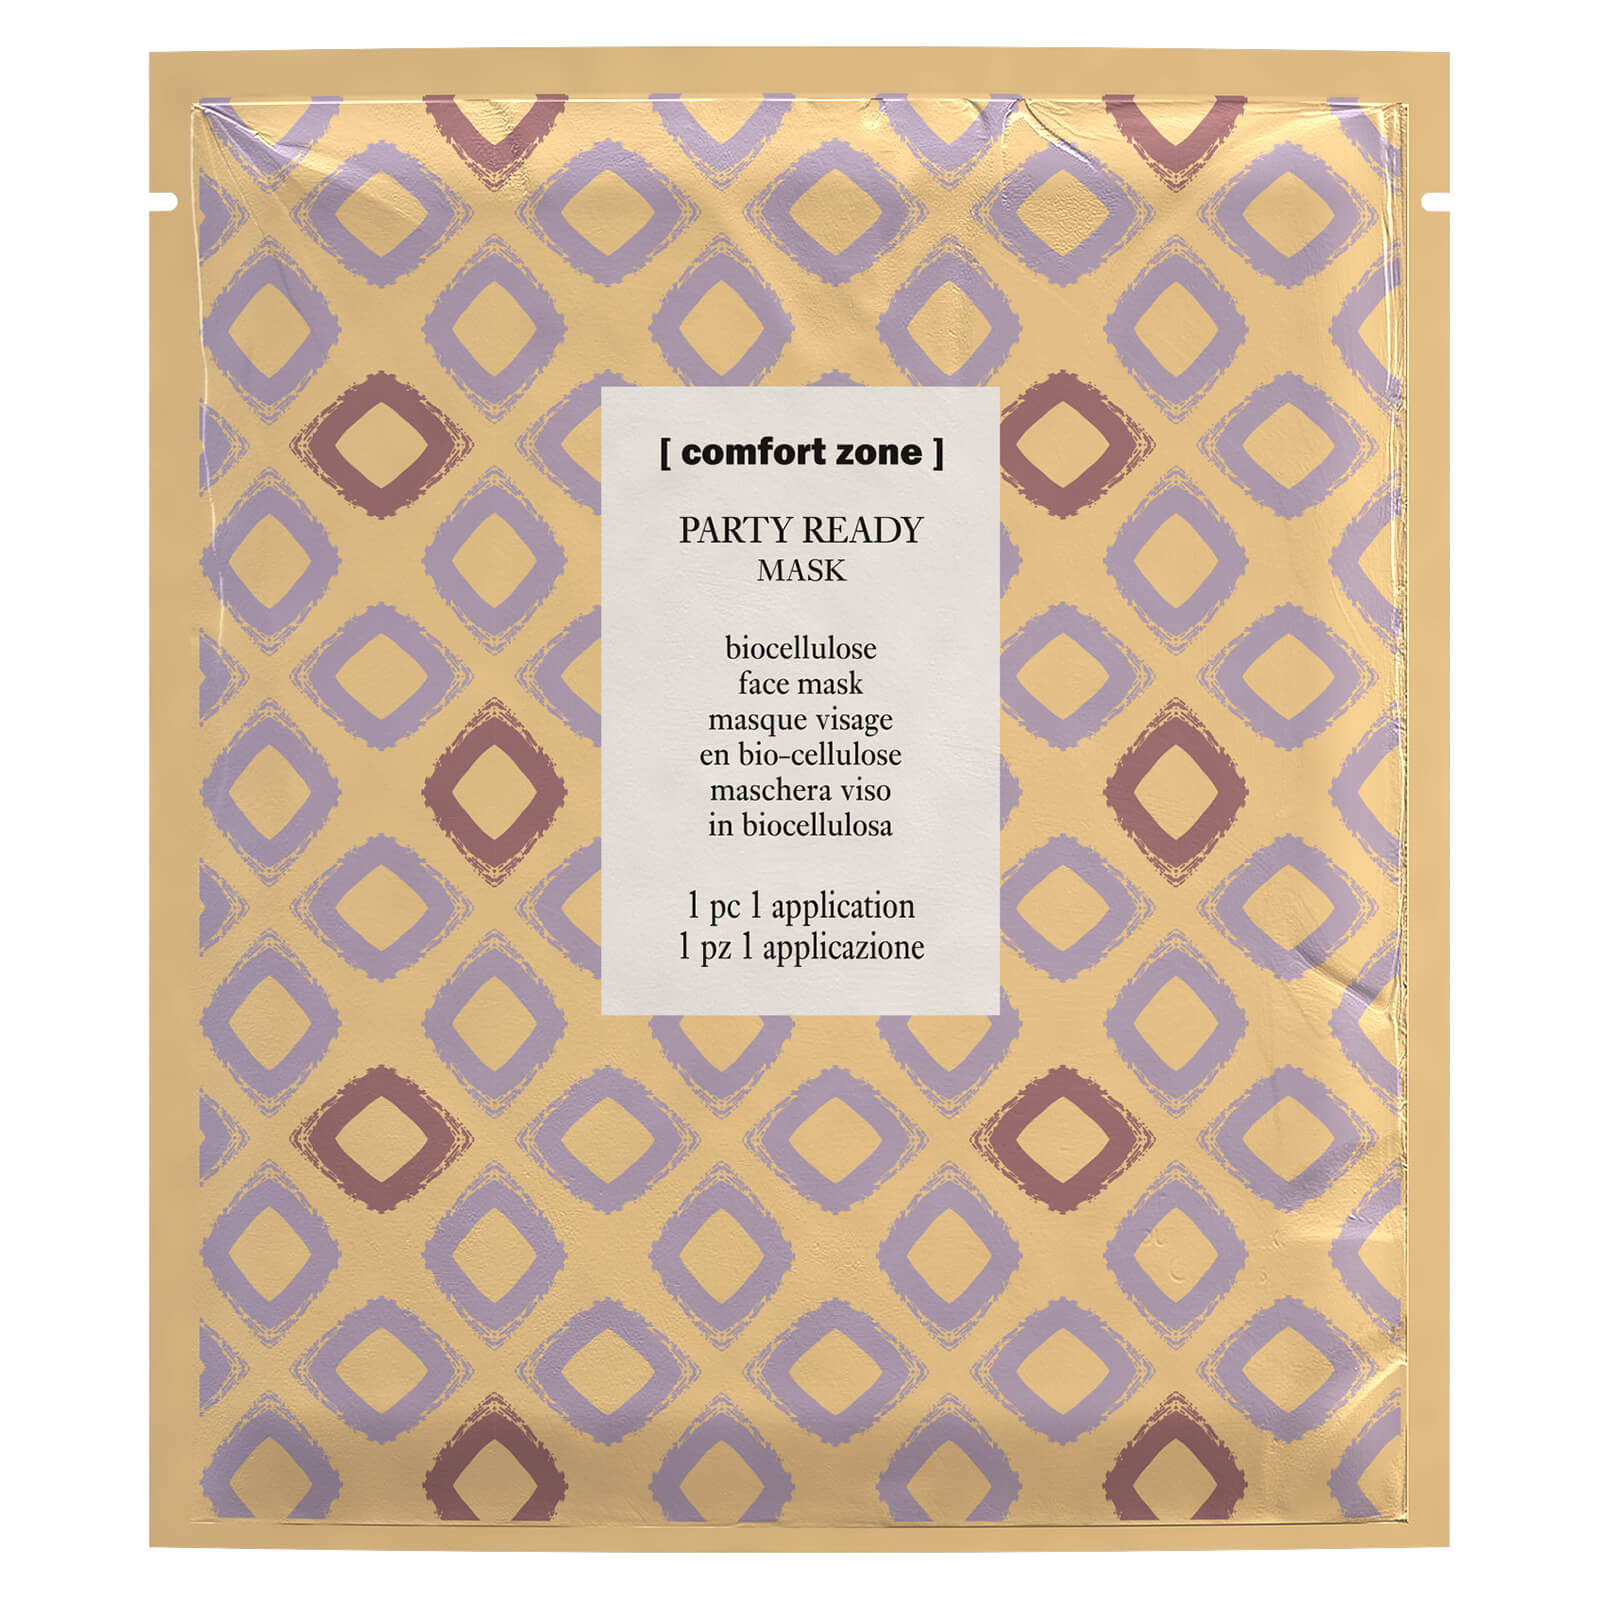 Comfort Zone Party Ready Sheet Mask 300g